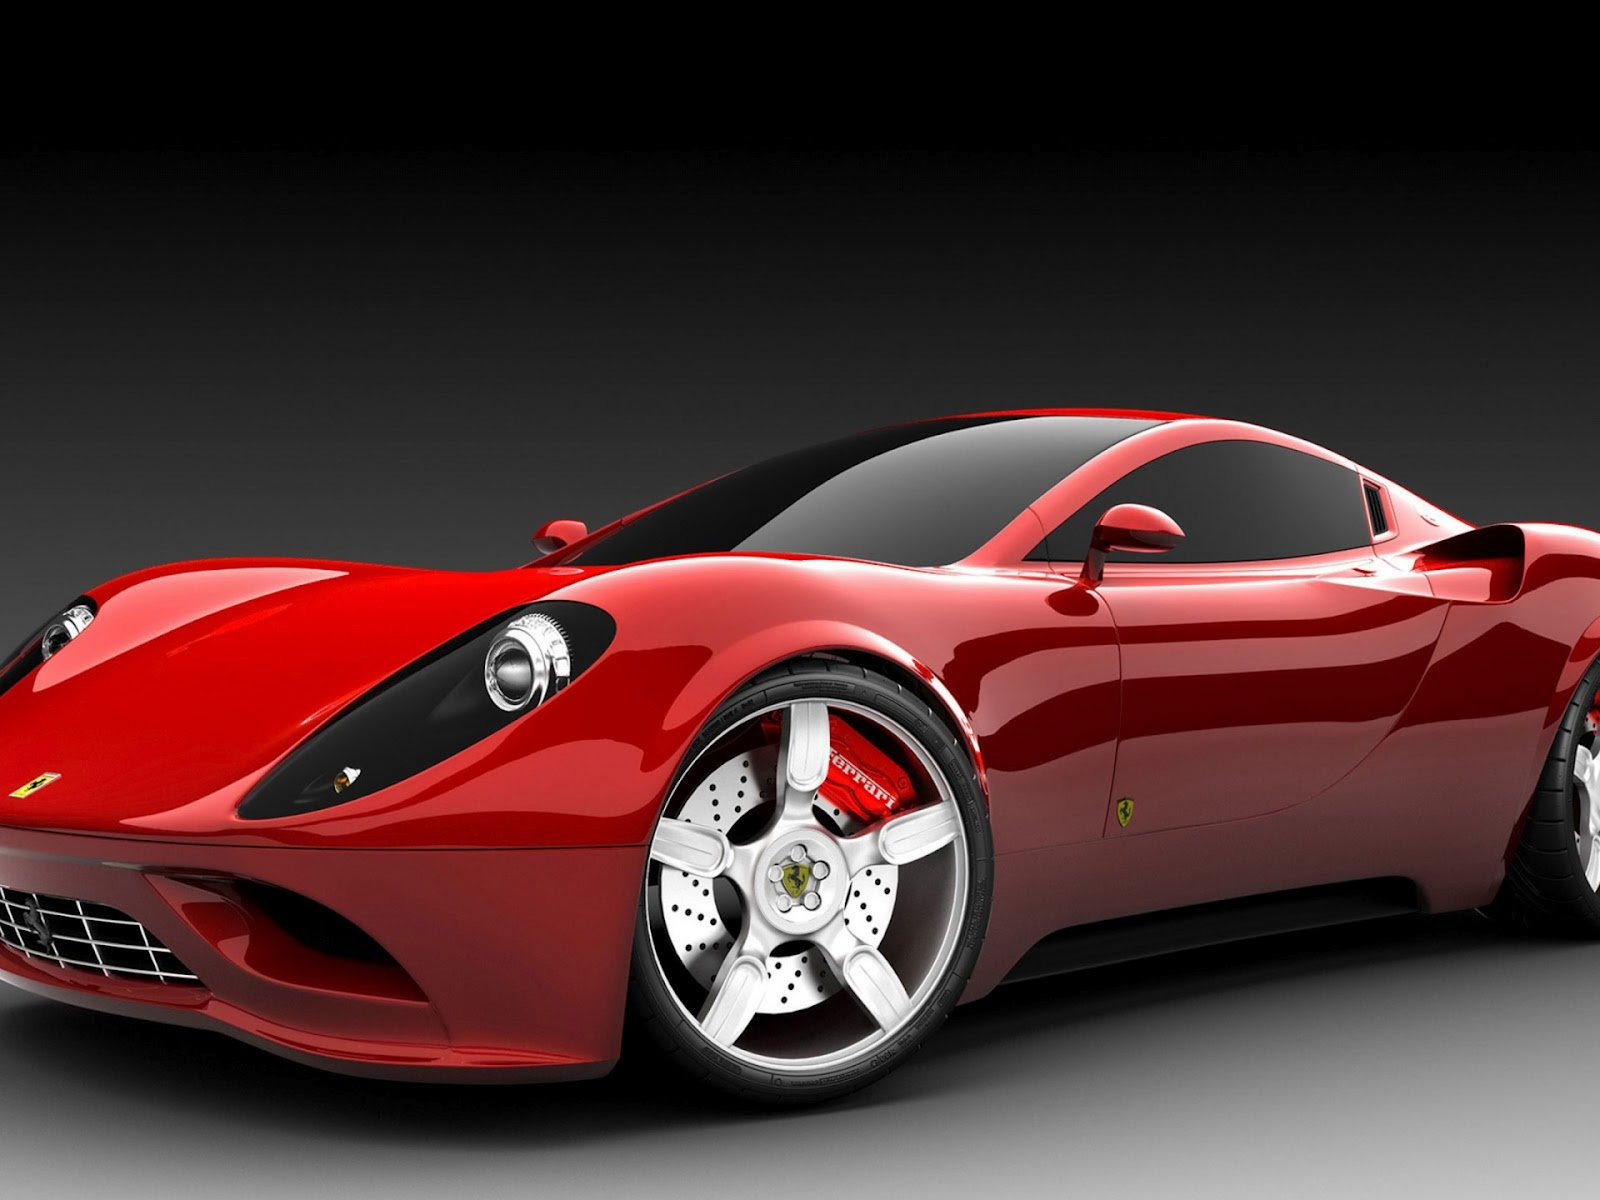 Car Wallpaper Car Wallpaper Concept Concept Car Ferrari Super Car. Ferrari  Concept Cars Ferrari F80 Concept 2014 Youtube